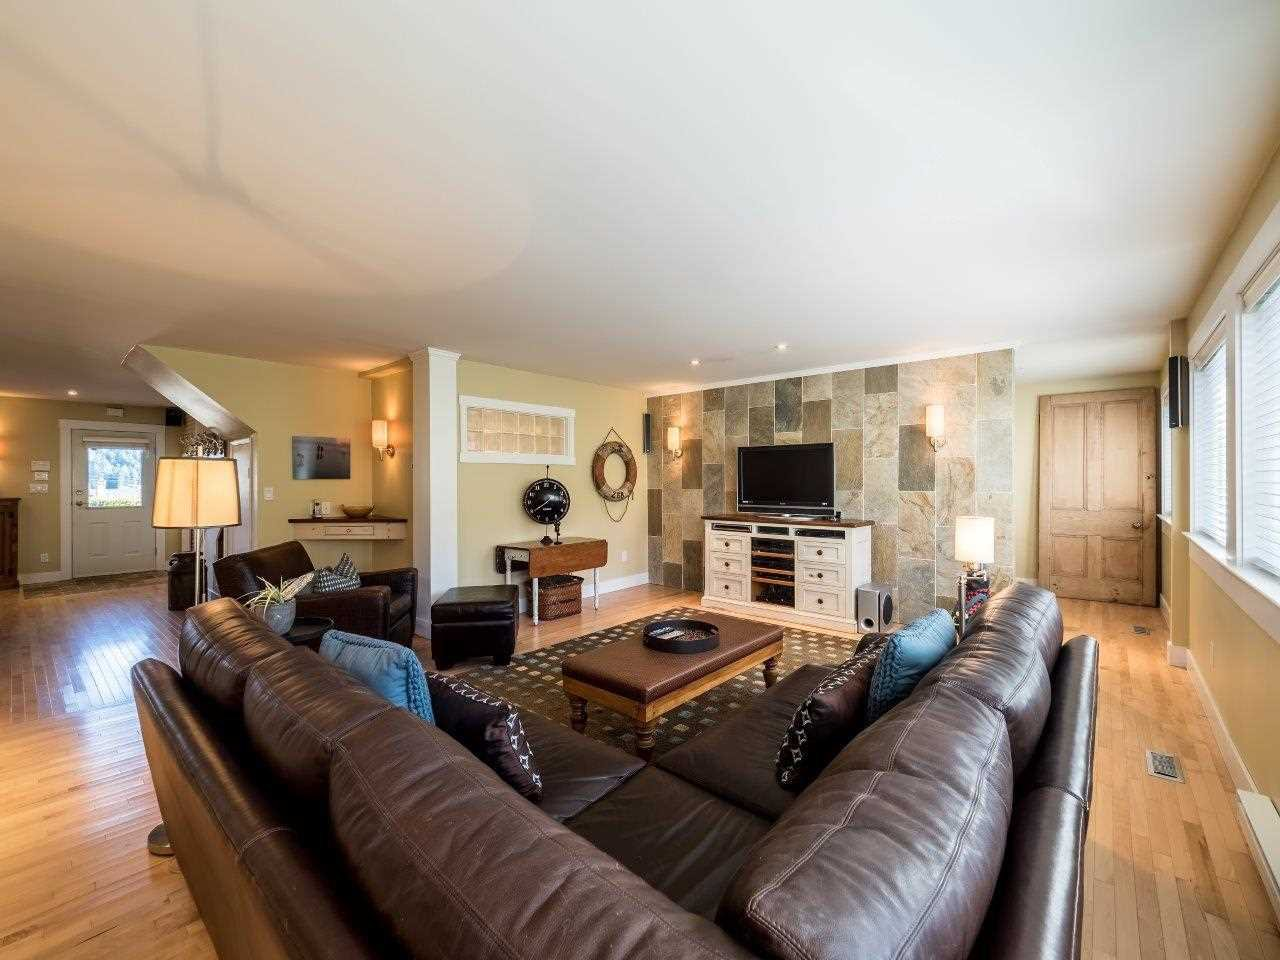 Photo 10: Photos: 345 BEACHVIEW DRIVE in North Vancouver: Dollarton House for sale : MLS®# R2035403